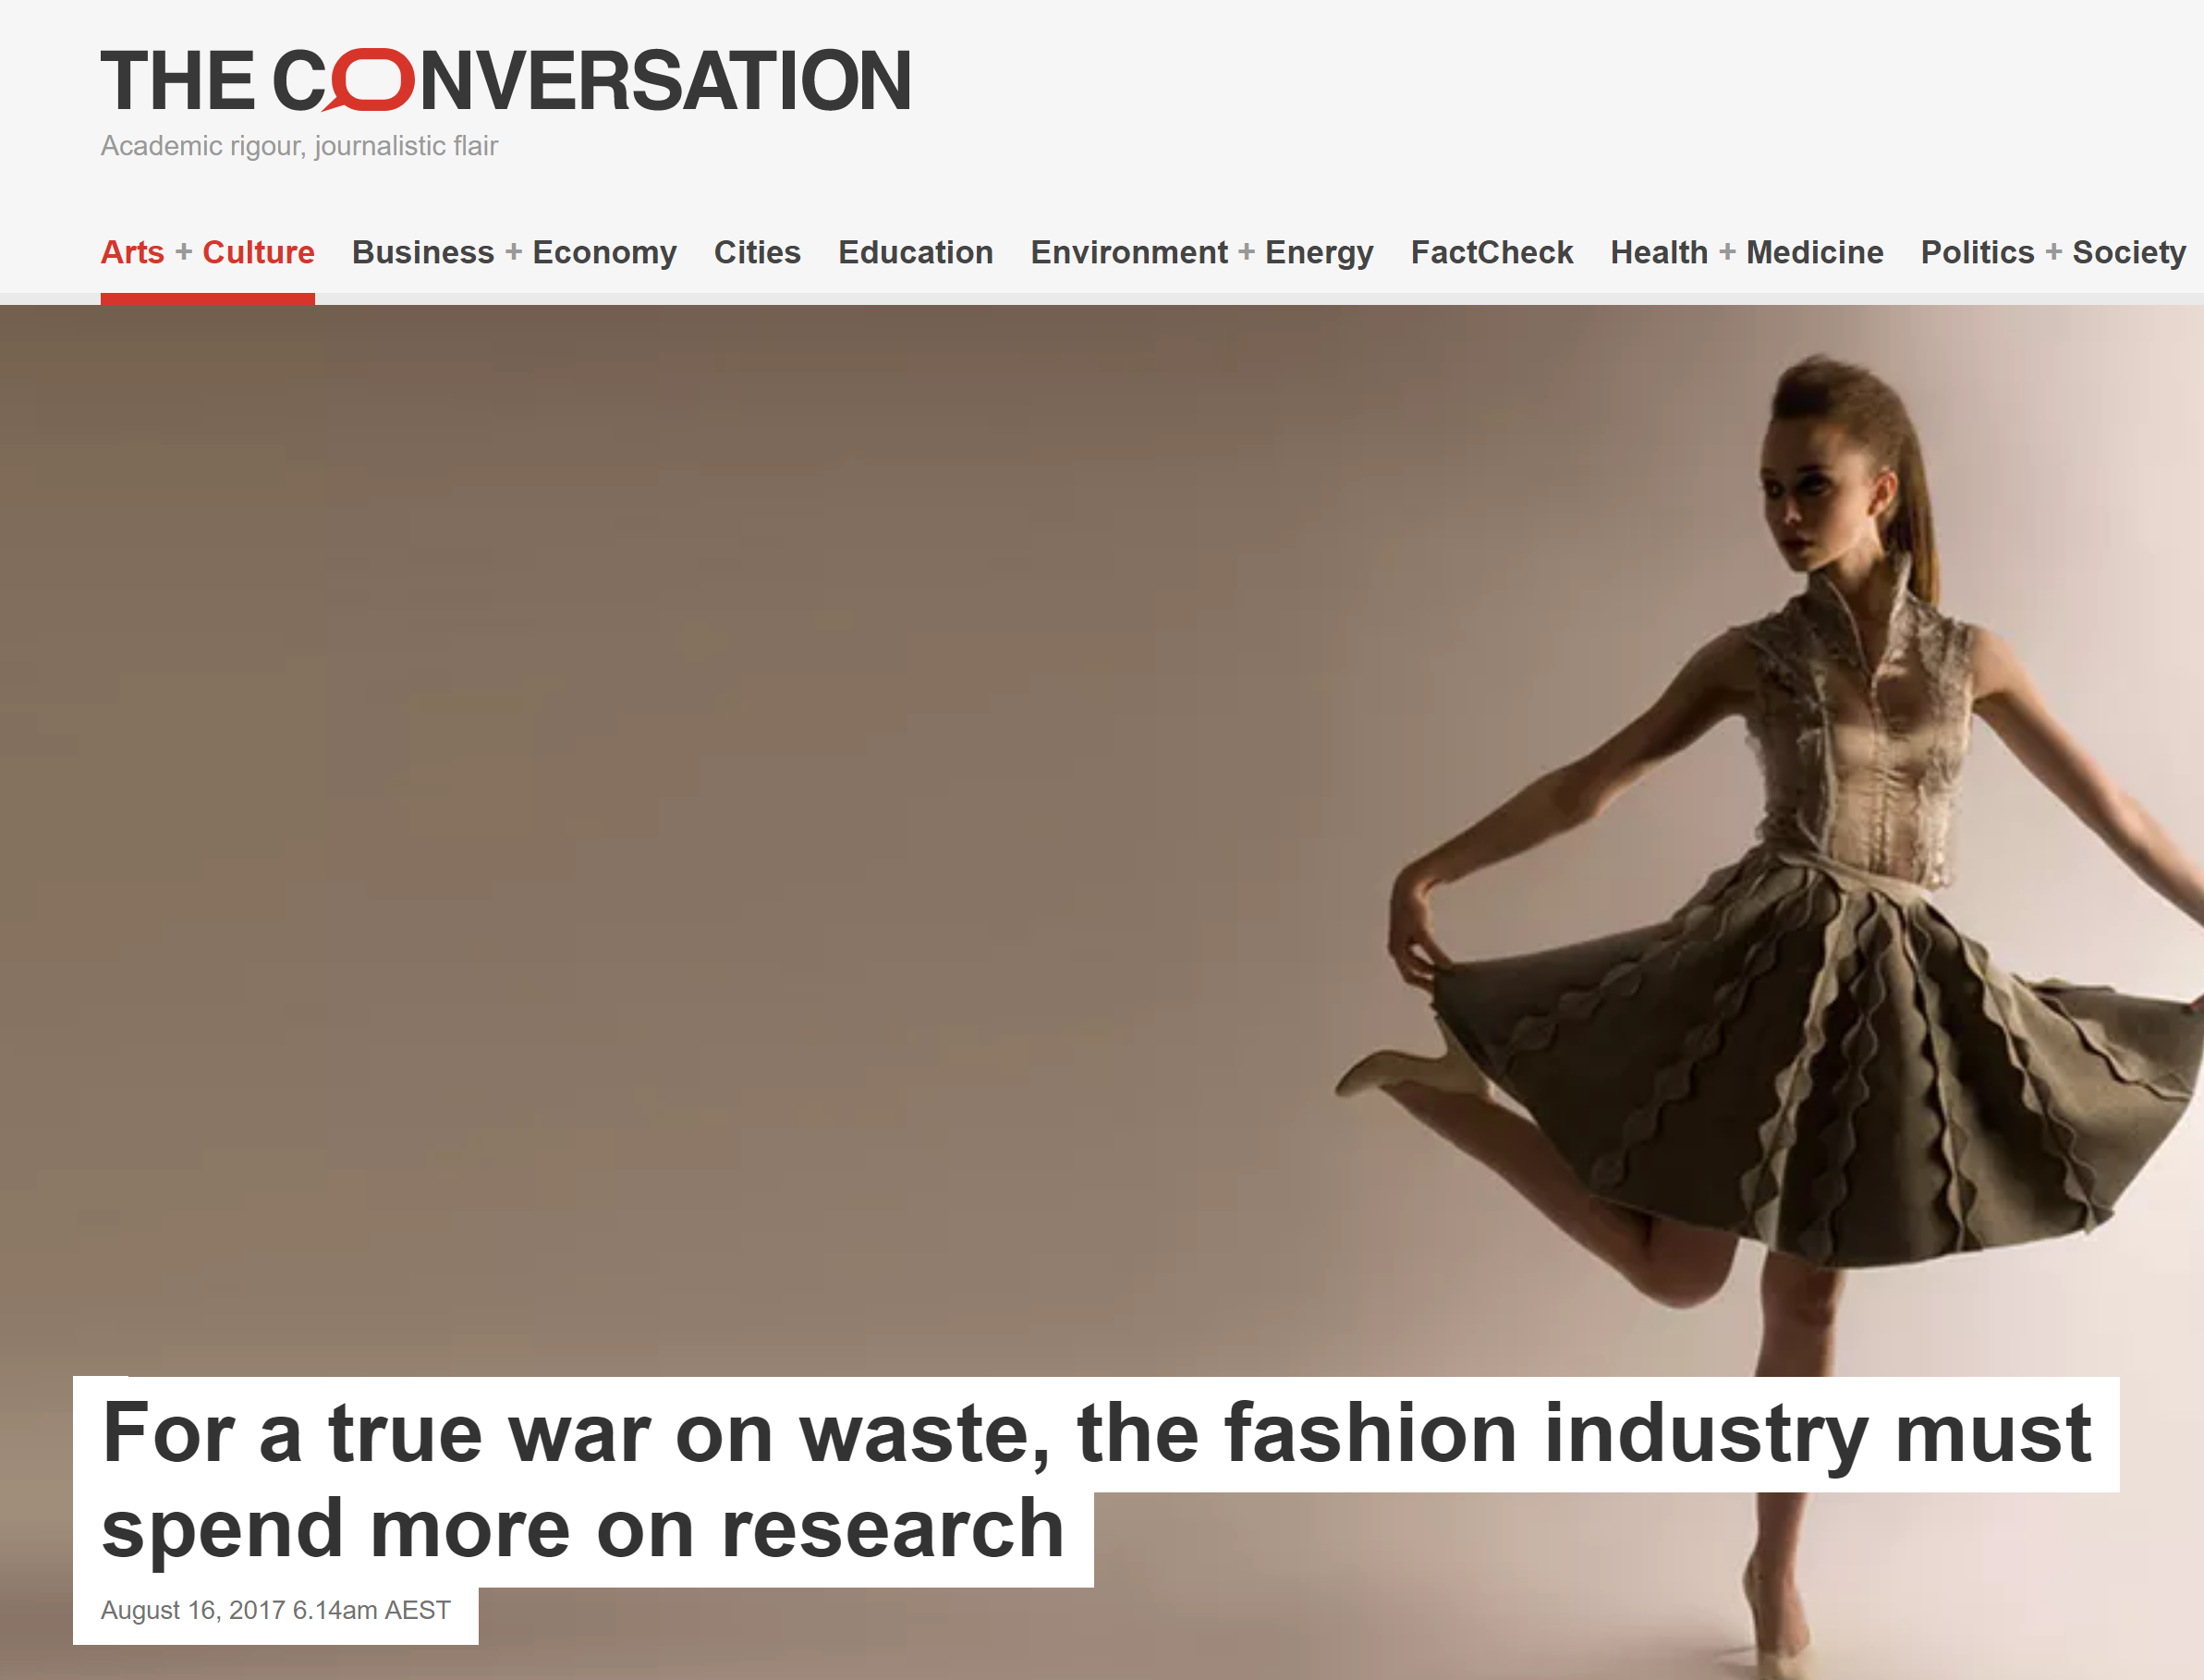 For a true war on waste, the fashion industry must spend more on research.    The Conversation  REFERENCE:  Liu, M. 2017, For a true war on waste, the fashion industry must spend more on research, theconversation.com, weblog, viewed 16 August 2017, <https://theconversation.com/for-a-true-war-on-waste-the-fashion-industry-must-spend-more-on-research-78673>